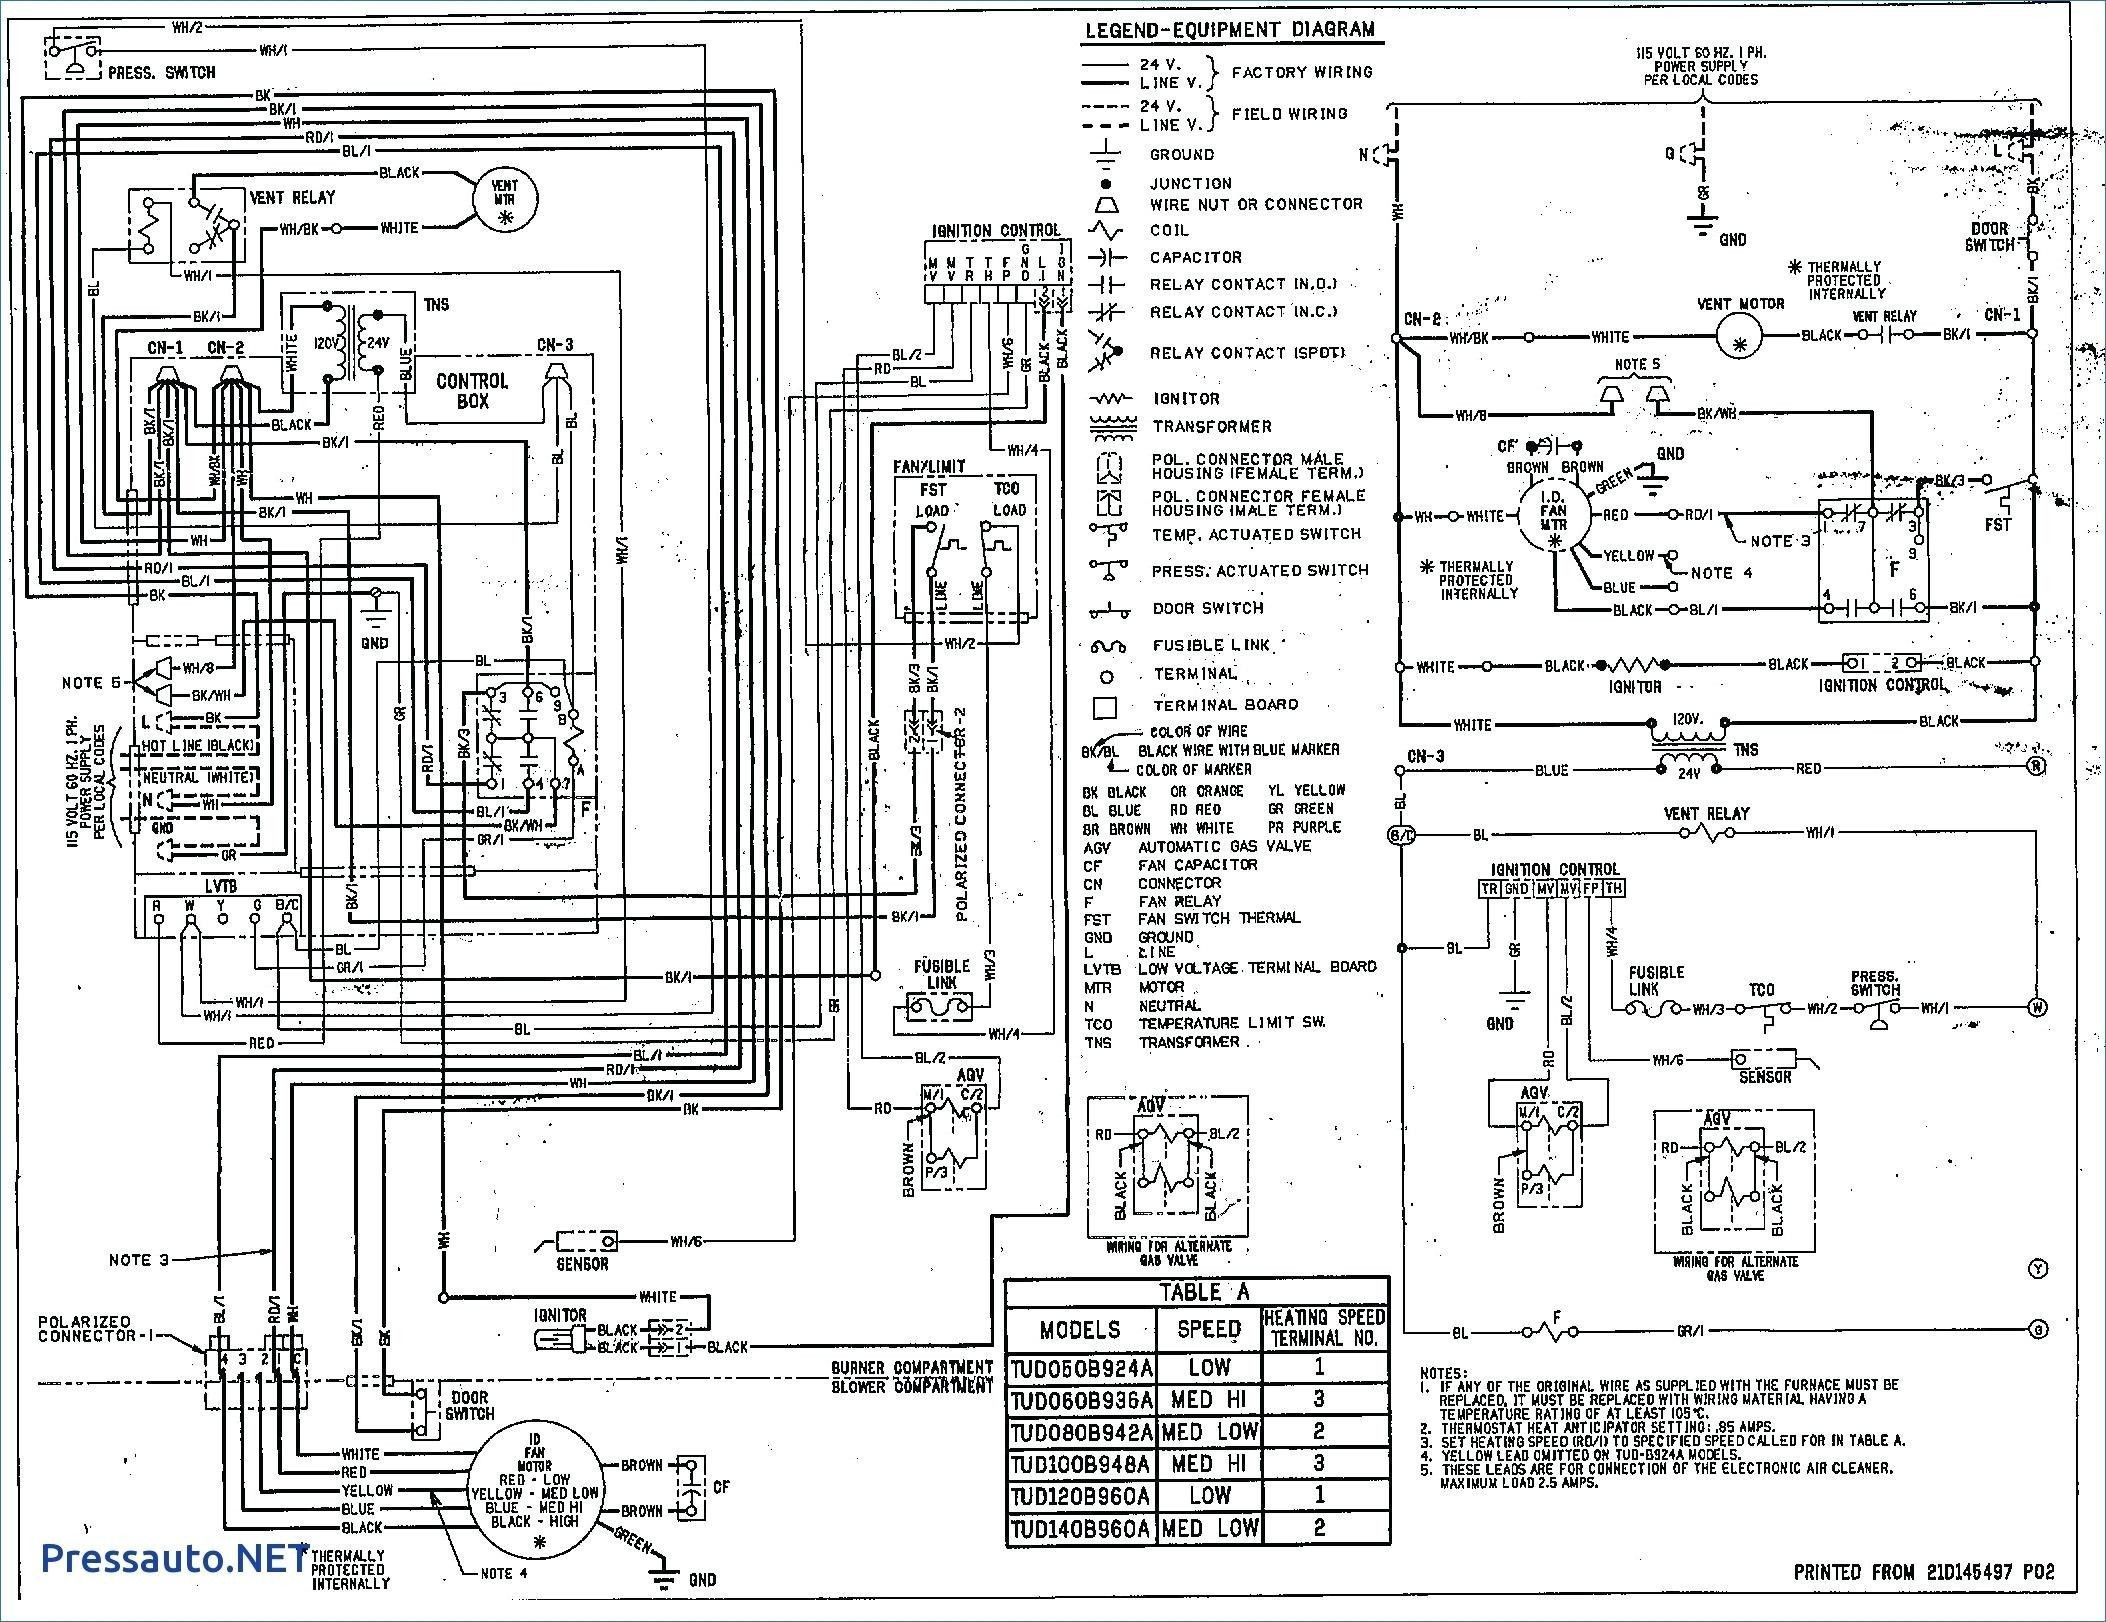 Awesome Trane Xe Wiring Diagram In